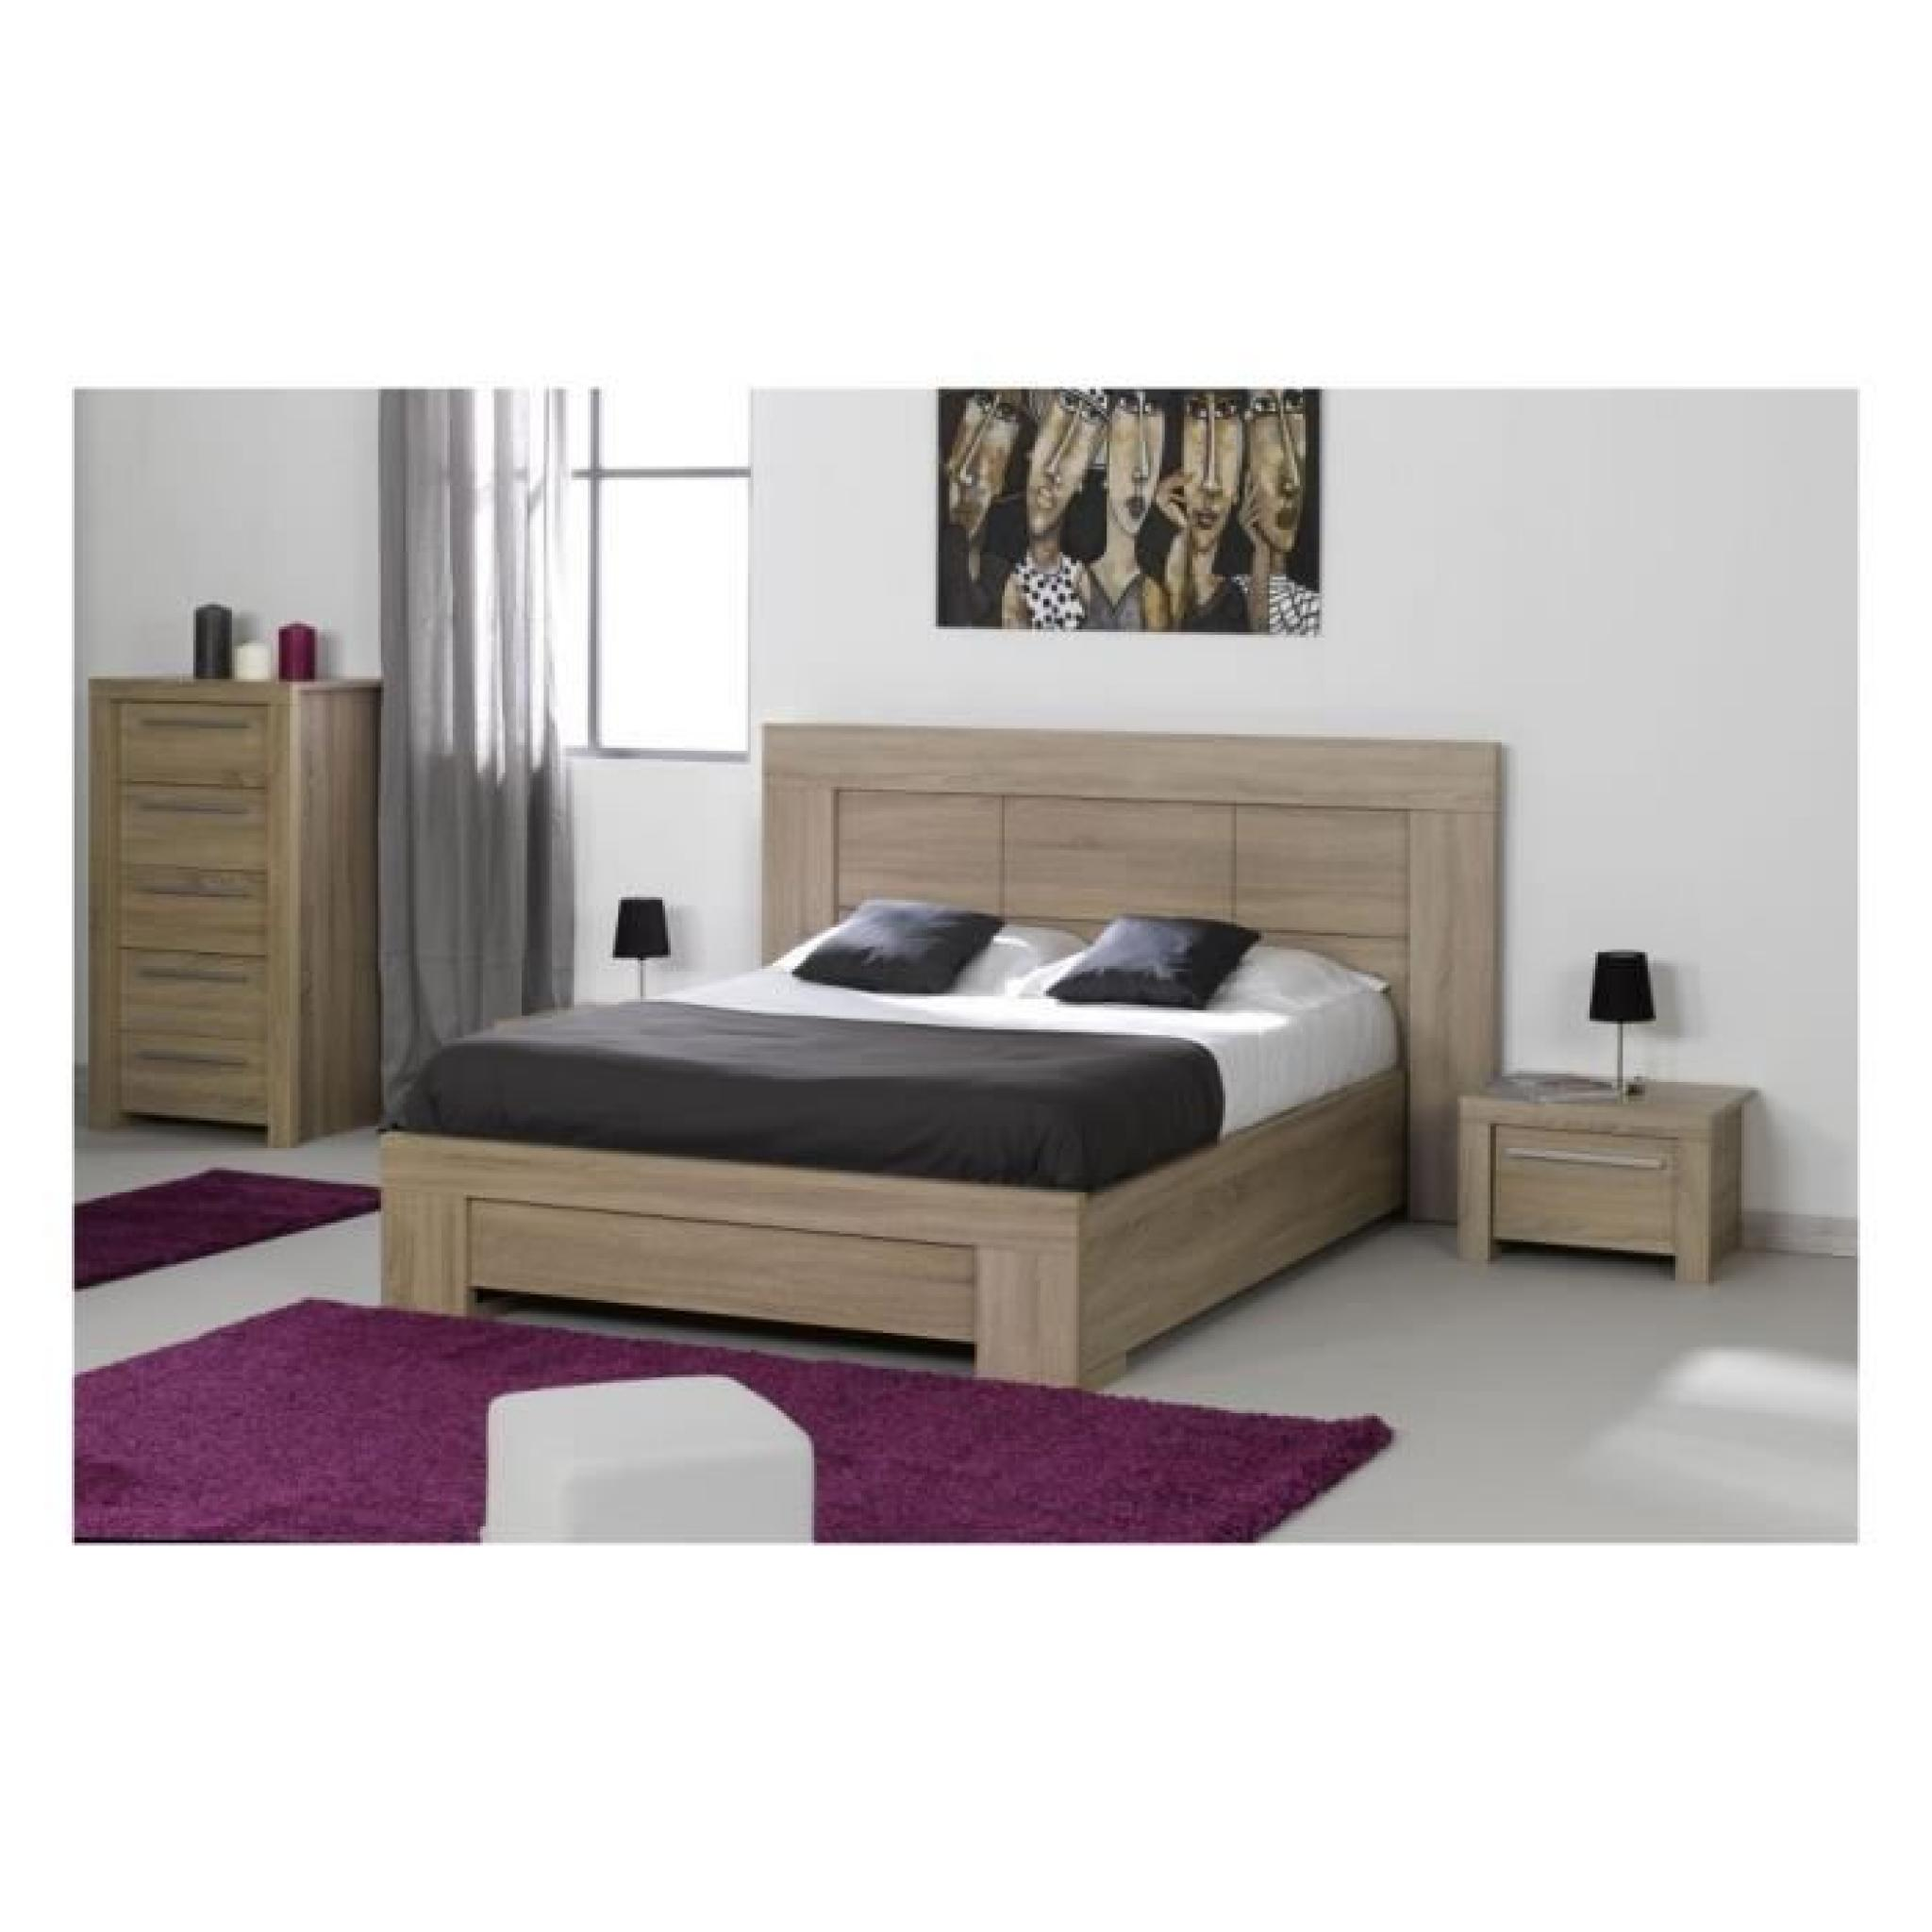 lit adulte 160x200 ana gris achat vente lit pas cher. Black Bedroom Furniture Sets. Home Design Ideas